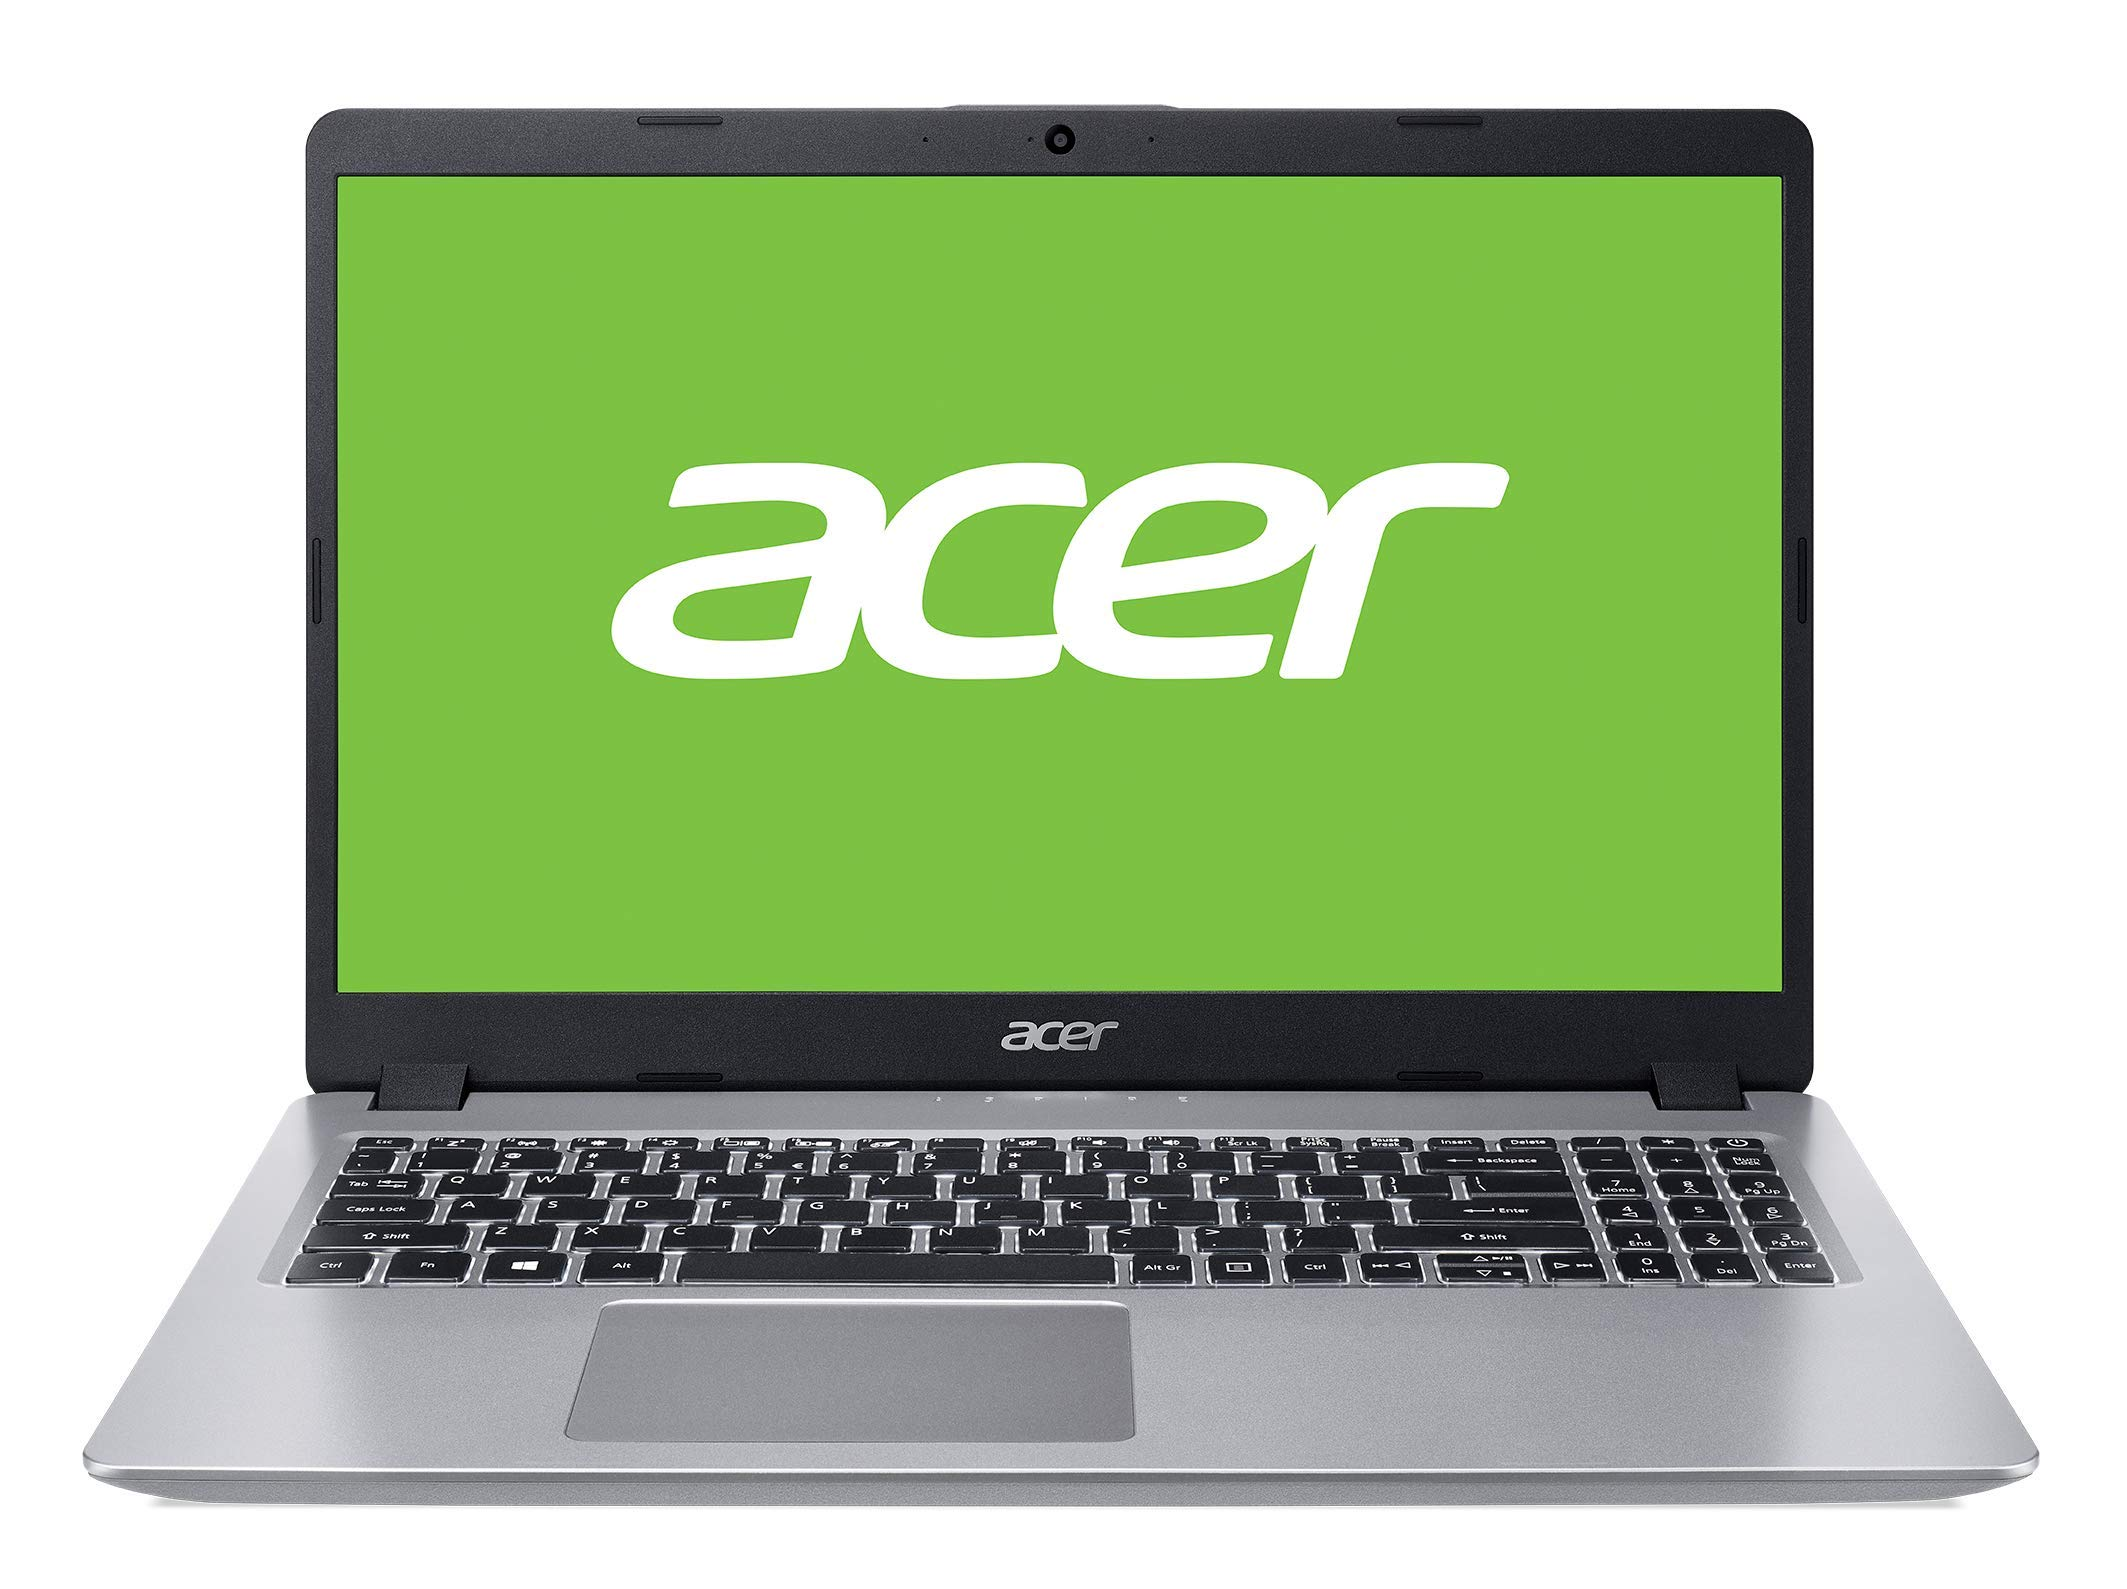 Acer Aspire 5 – Ordenador portátil  HD+ LED (Intel Core , 8 GB de RAM, Windows 10 Home)  – Teclado QWERTY Español